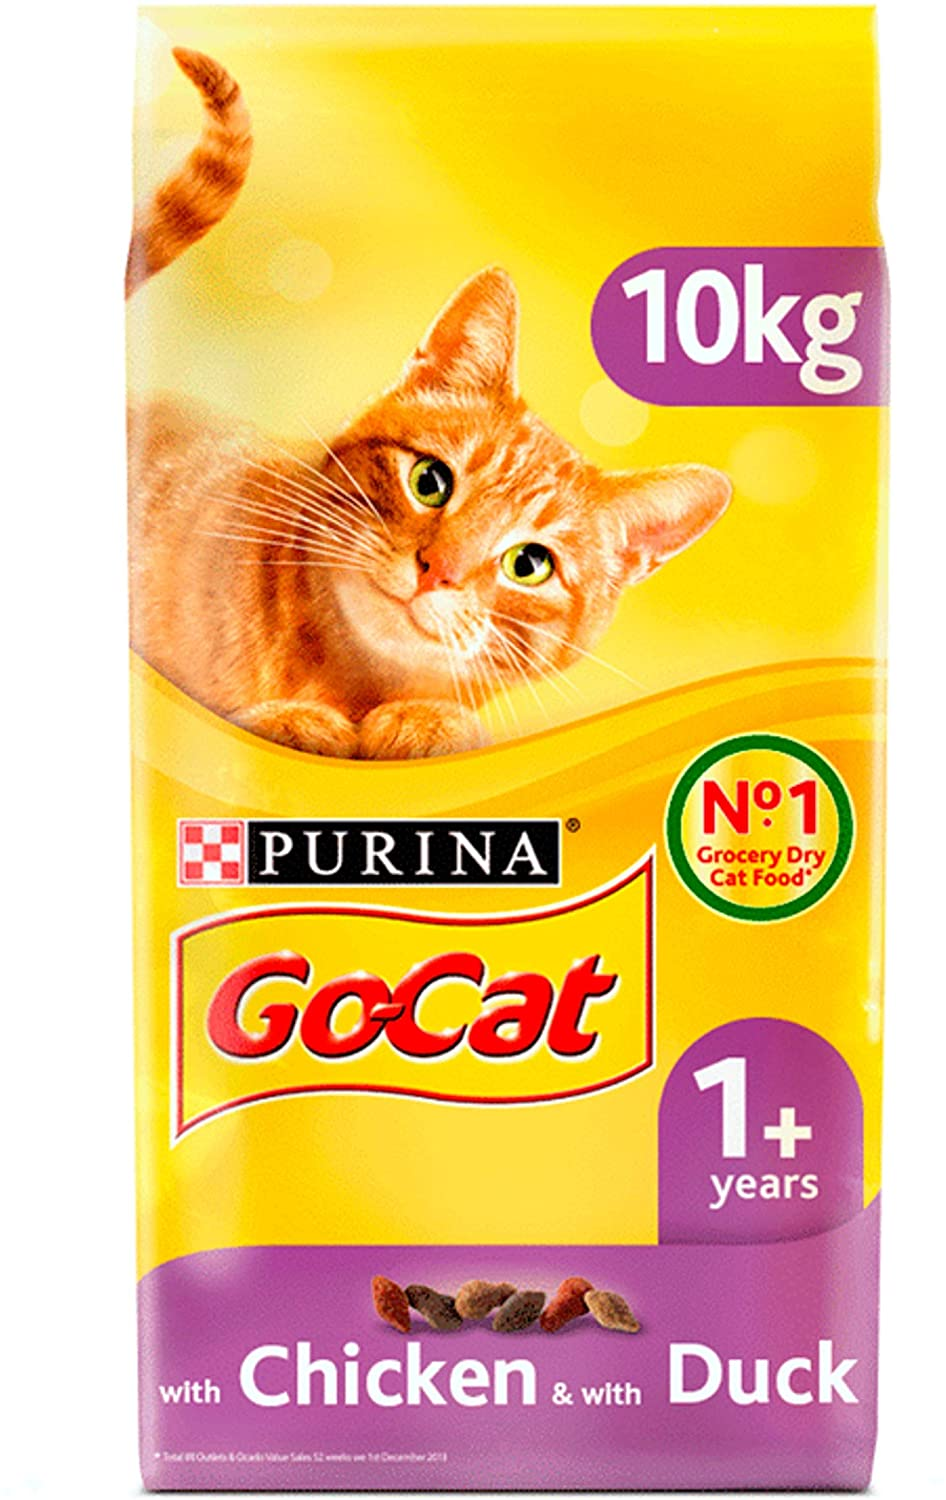 Go Cat ADULT Chicken & Duck Dry Cat Food 10 kg, Cat Food by Dog In A Box